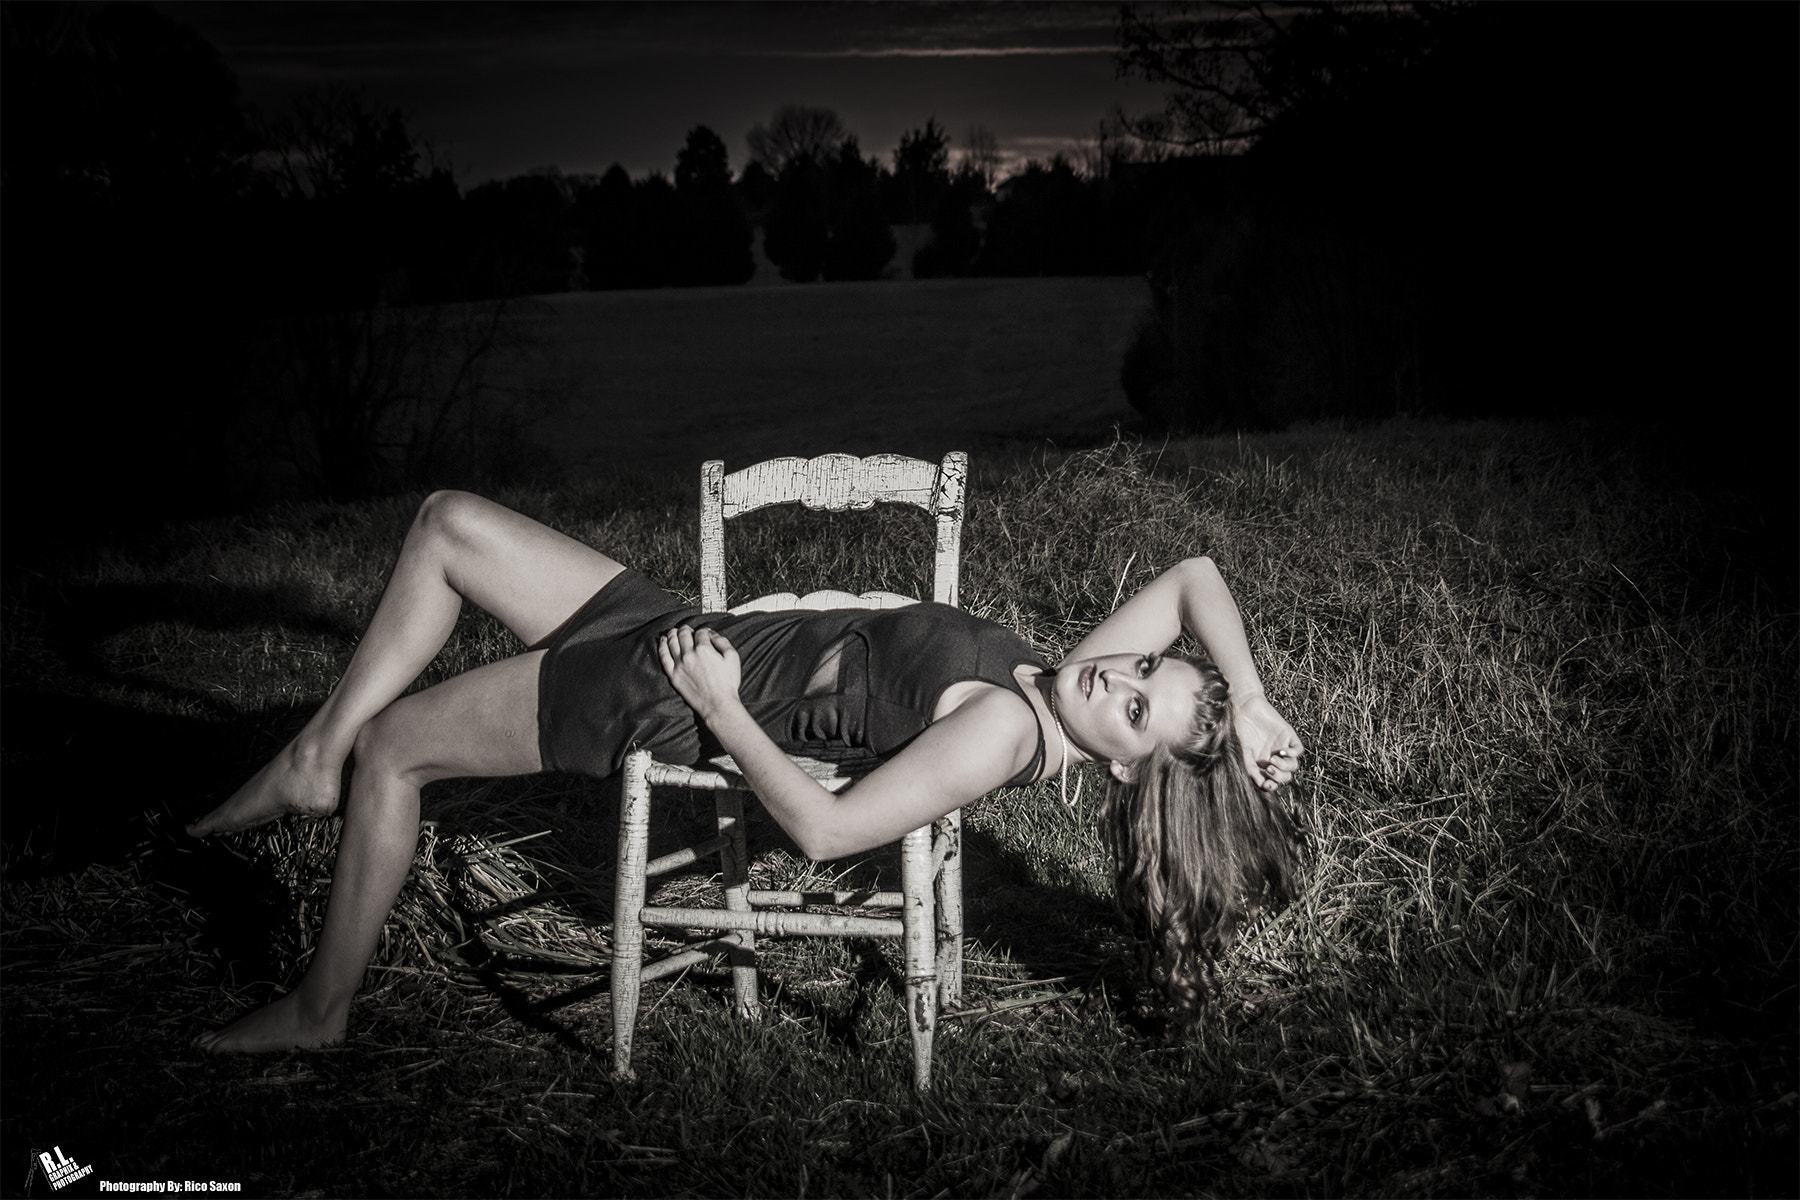 Photograph Sexiness in the Field by Rico Saxon on 500px